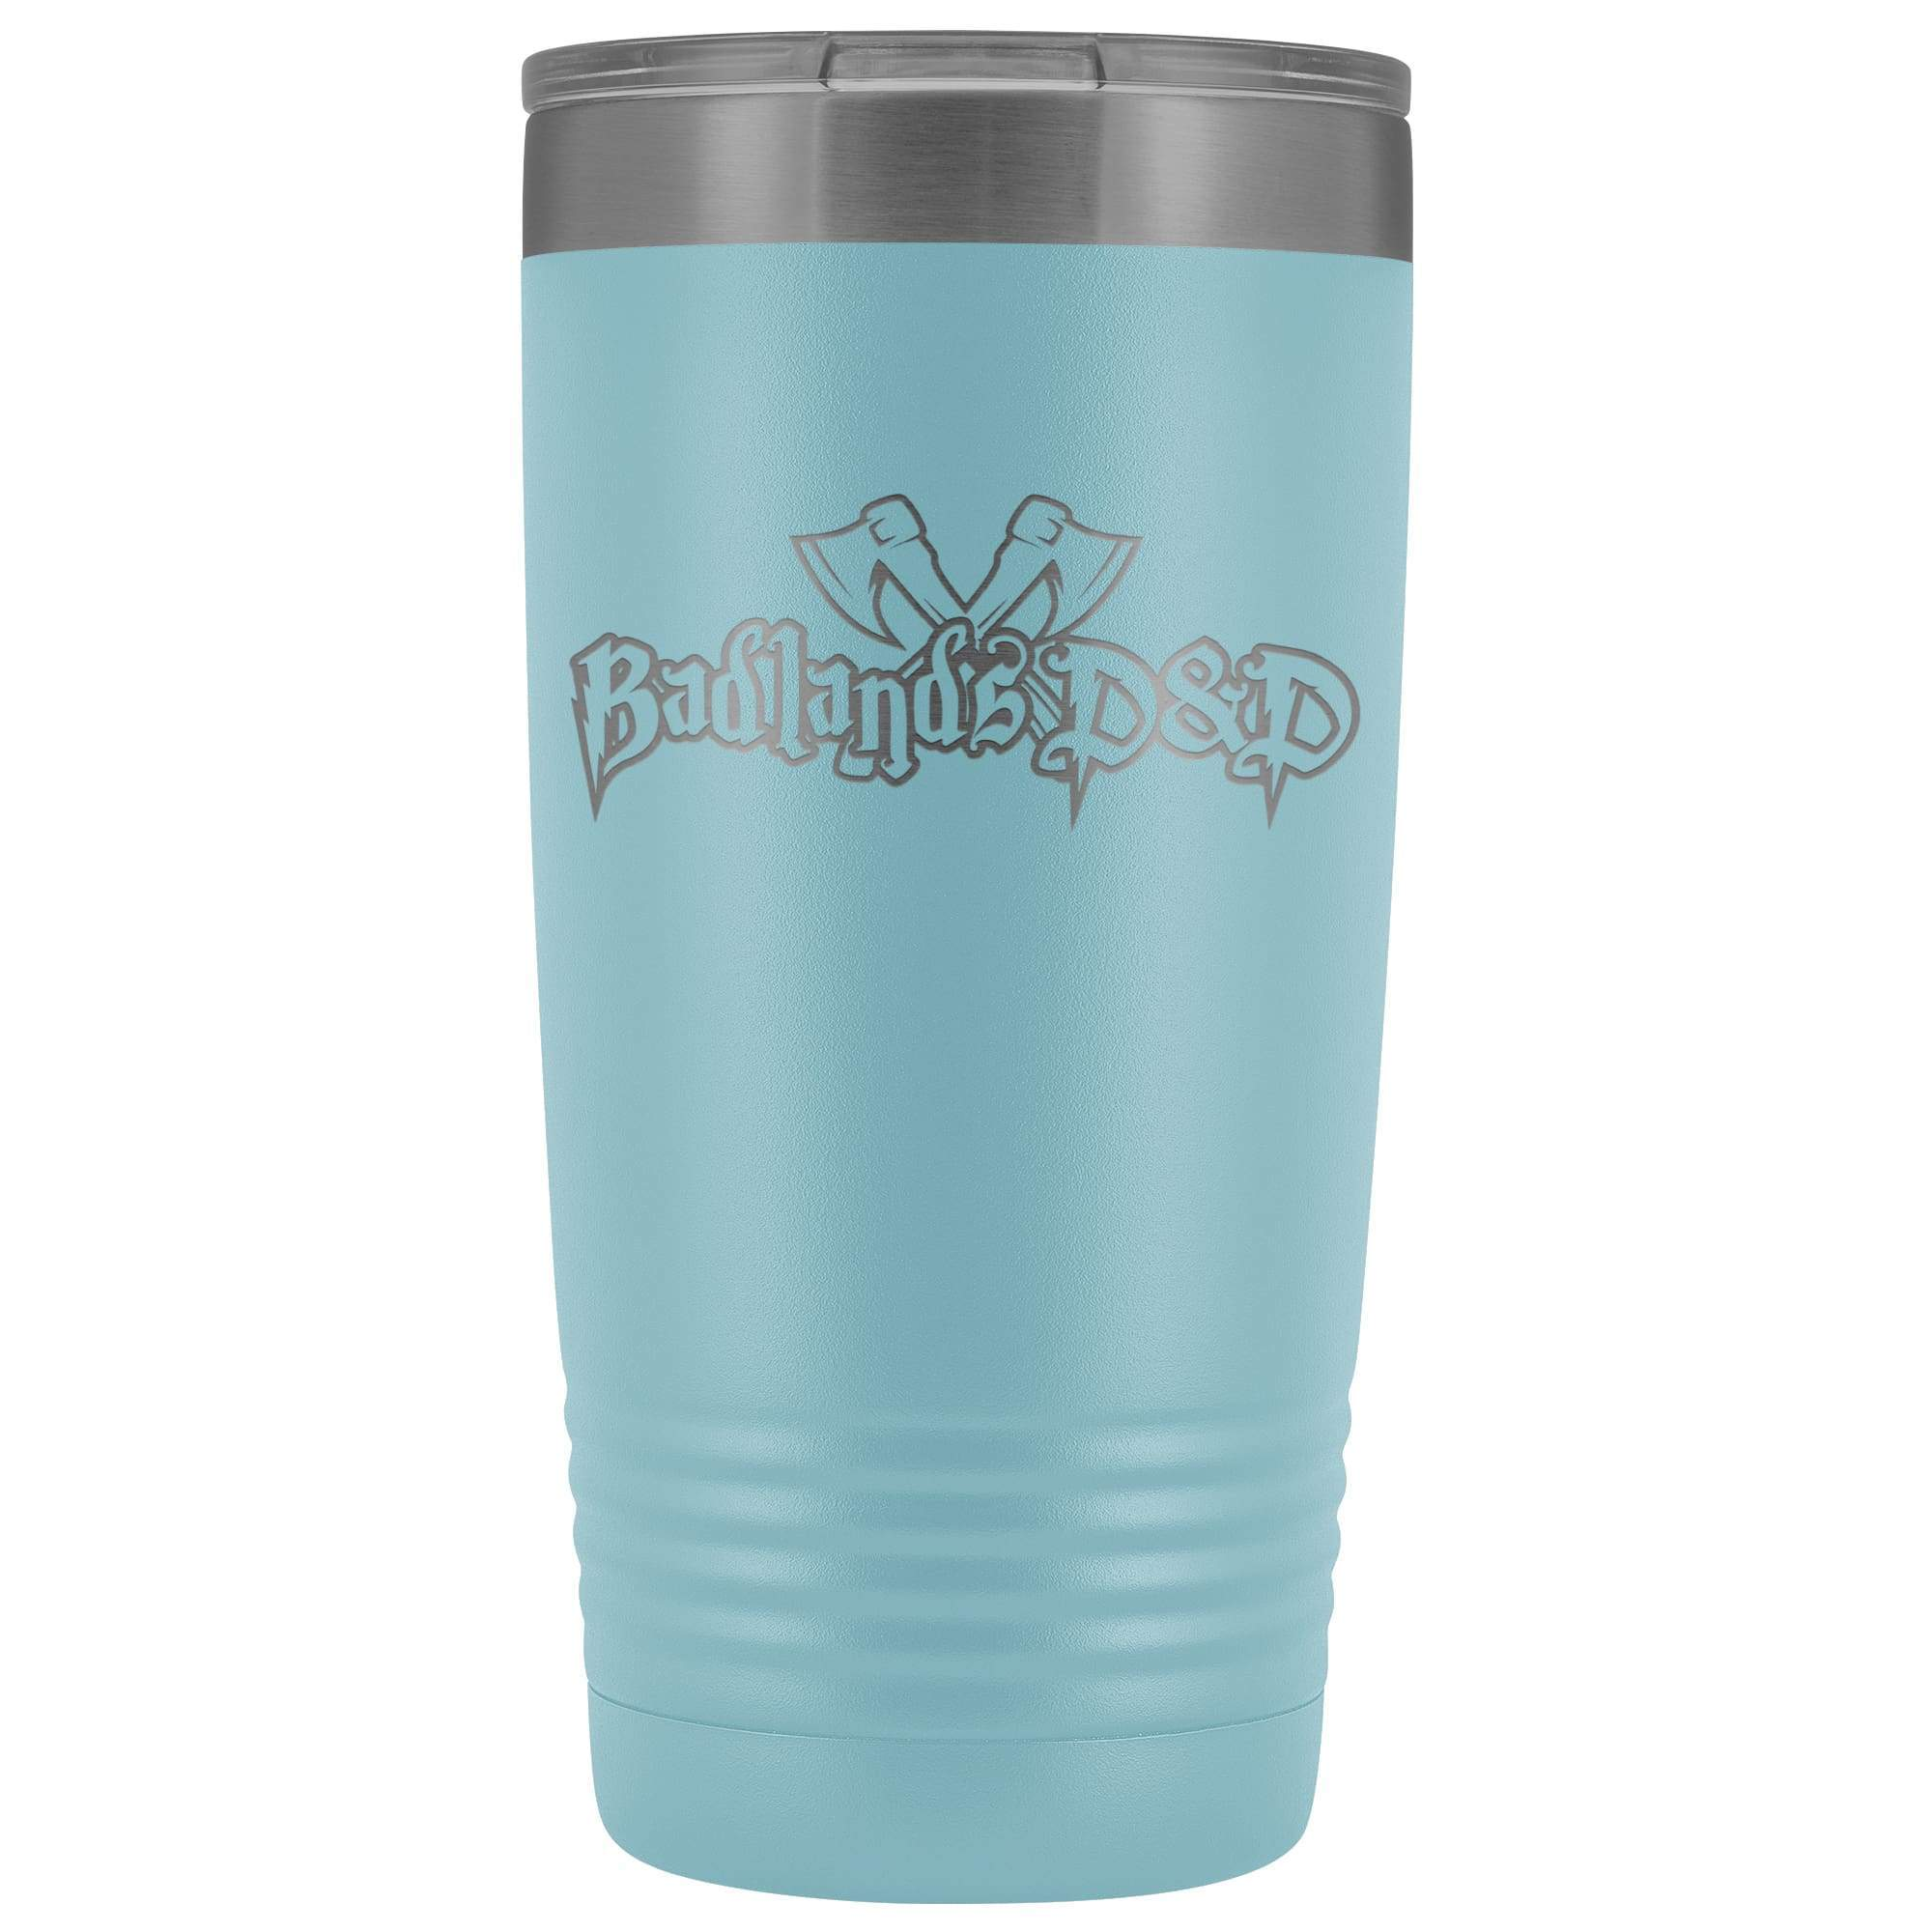 Badlands D&D 20oz Vacuum Tumbler - Light Blue - Tumblers